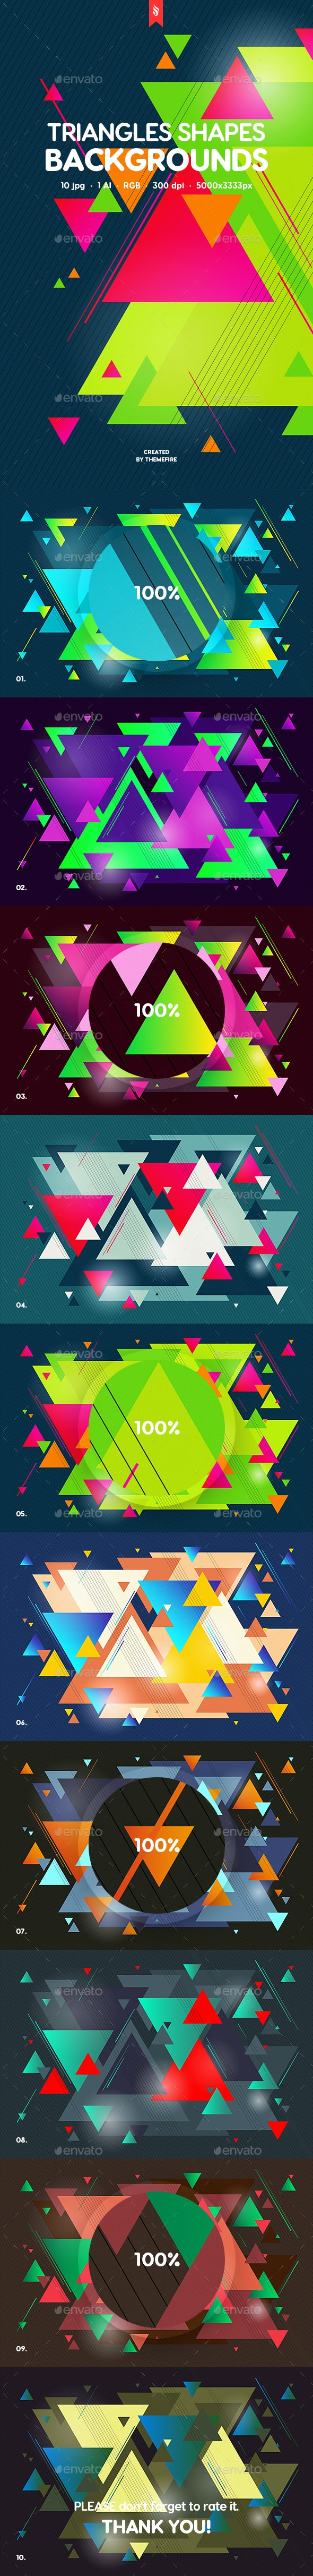 Triangles Shapes Backgrounds - Abstract Backgrounds